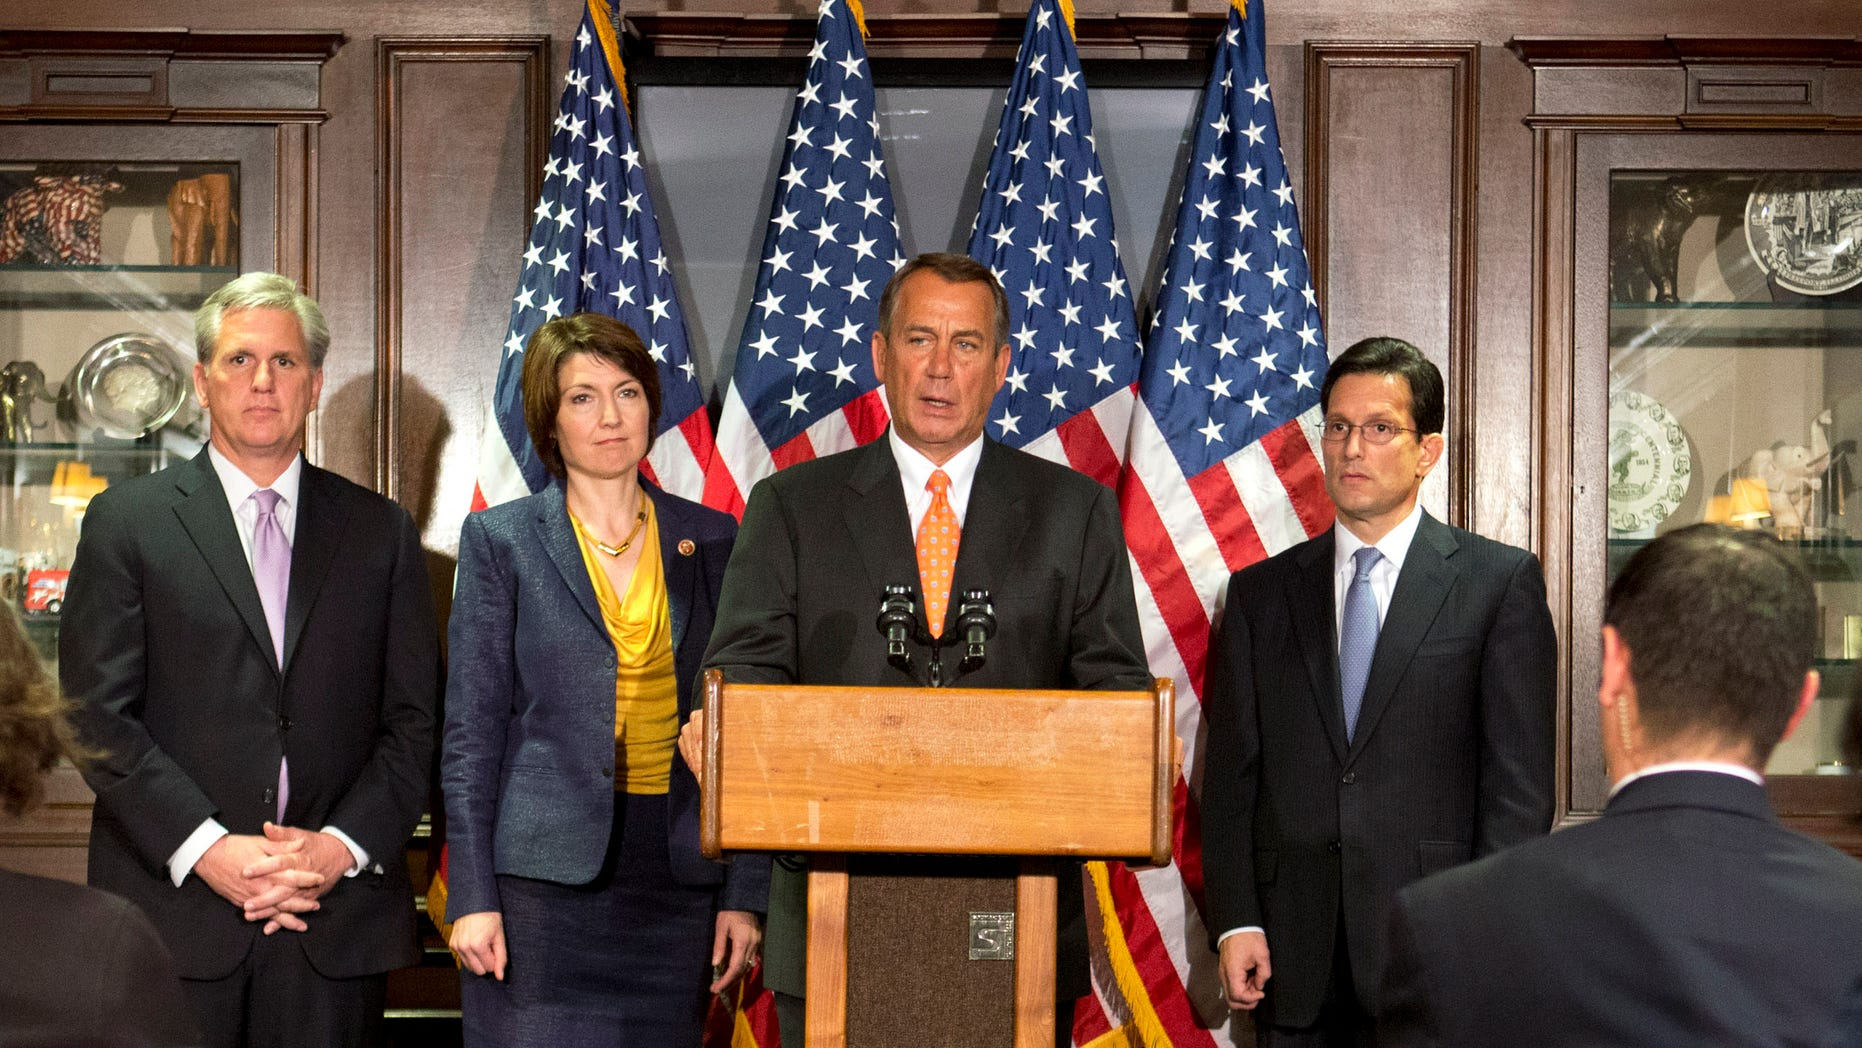 FILE: April 16, 2013: House Speaker John Boehner,center, accompanied by members of the House Republican leadership, speaks on Capitol Hill, in Washington, D.C.